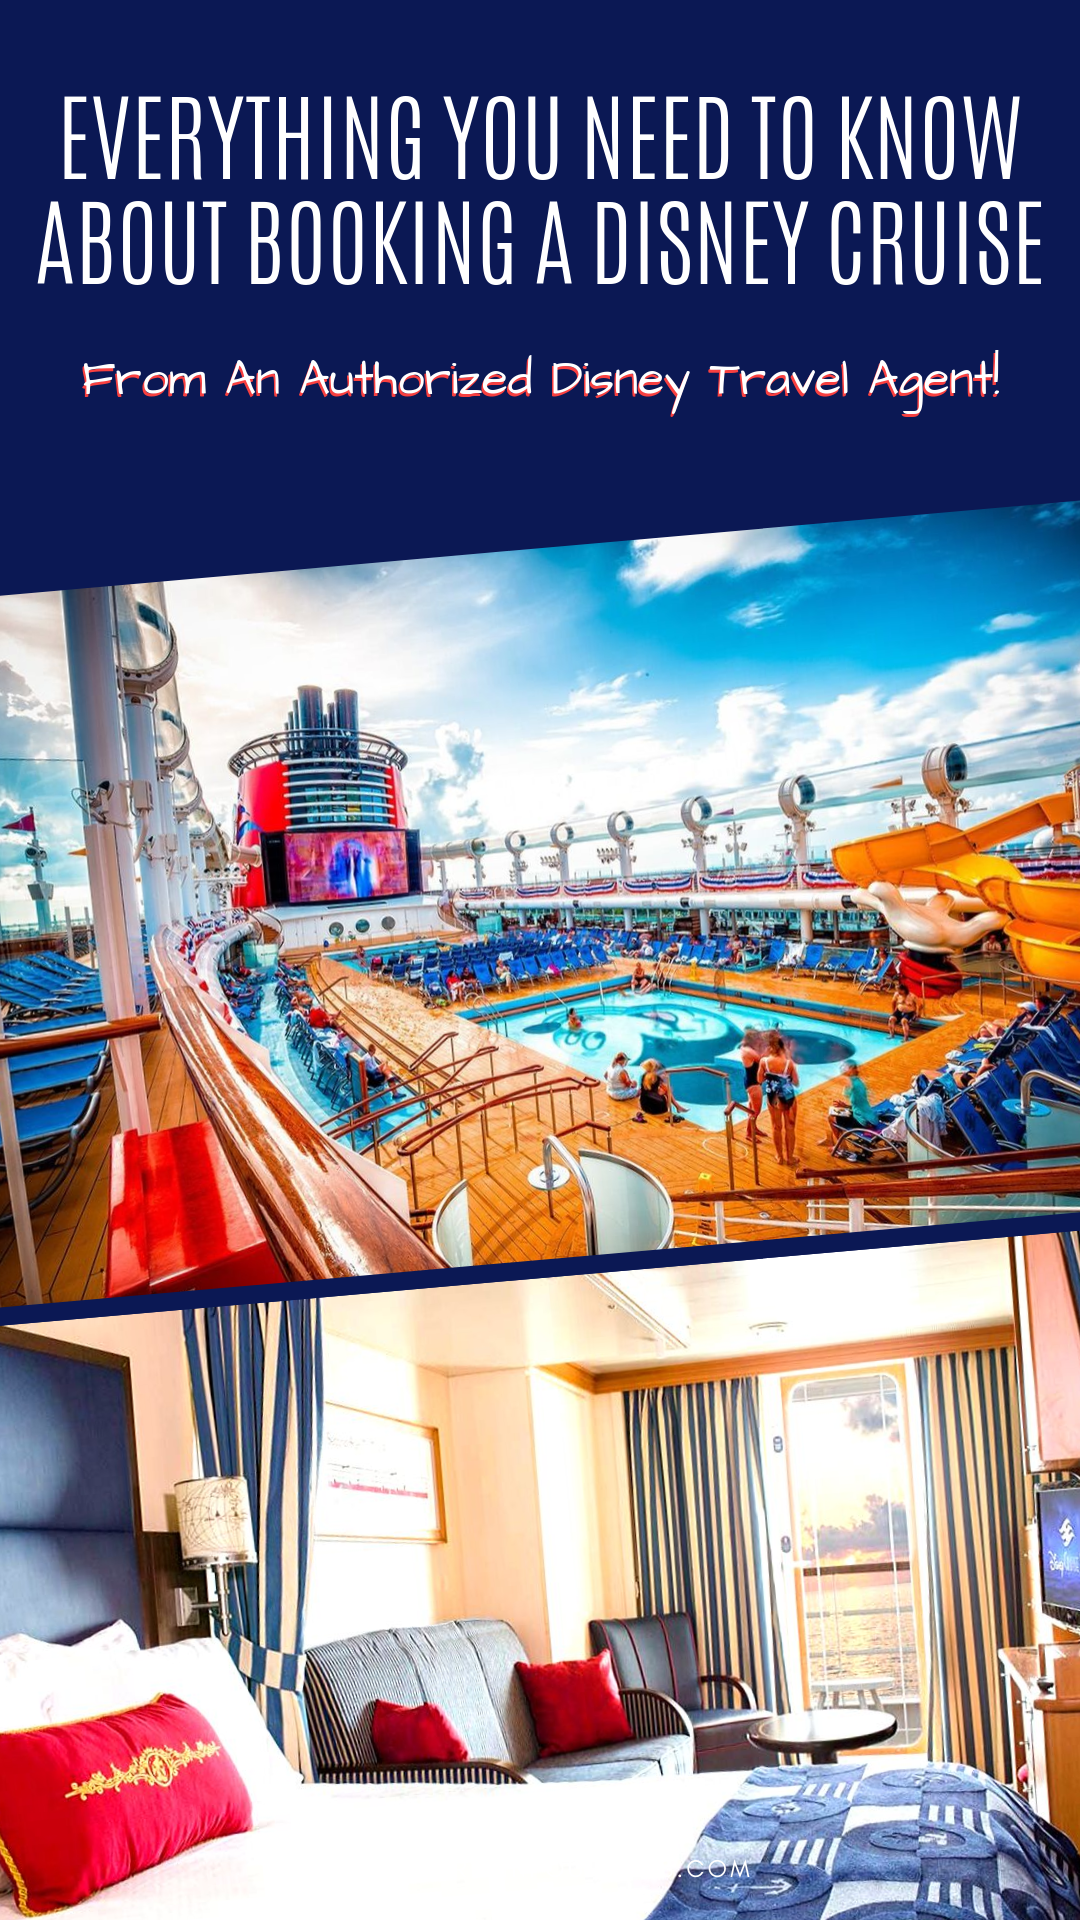 How much is a Disney Cruise? We'll find out along with what this cruise line has to offer in this Ultimate Guide to Disney Cruises.